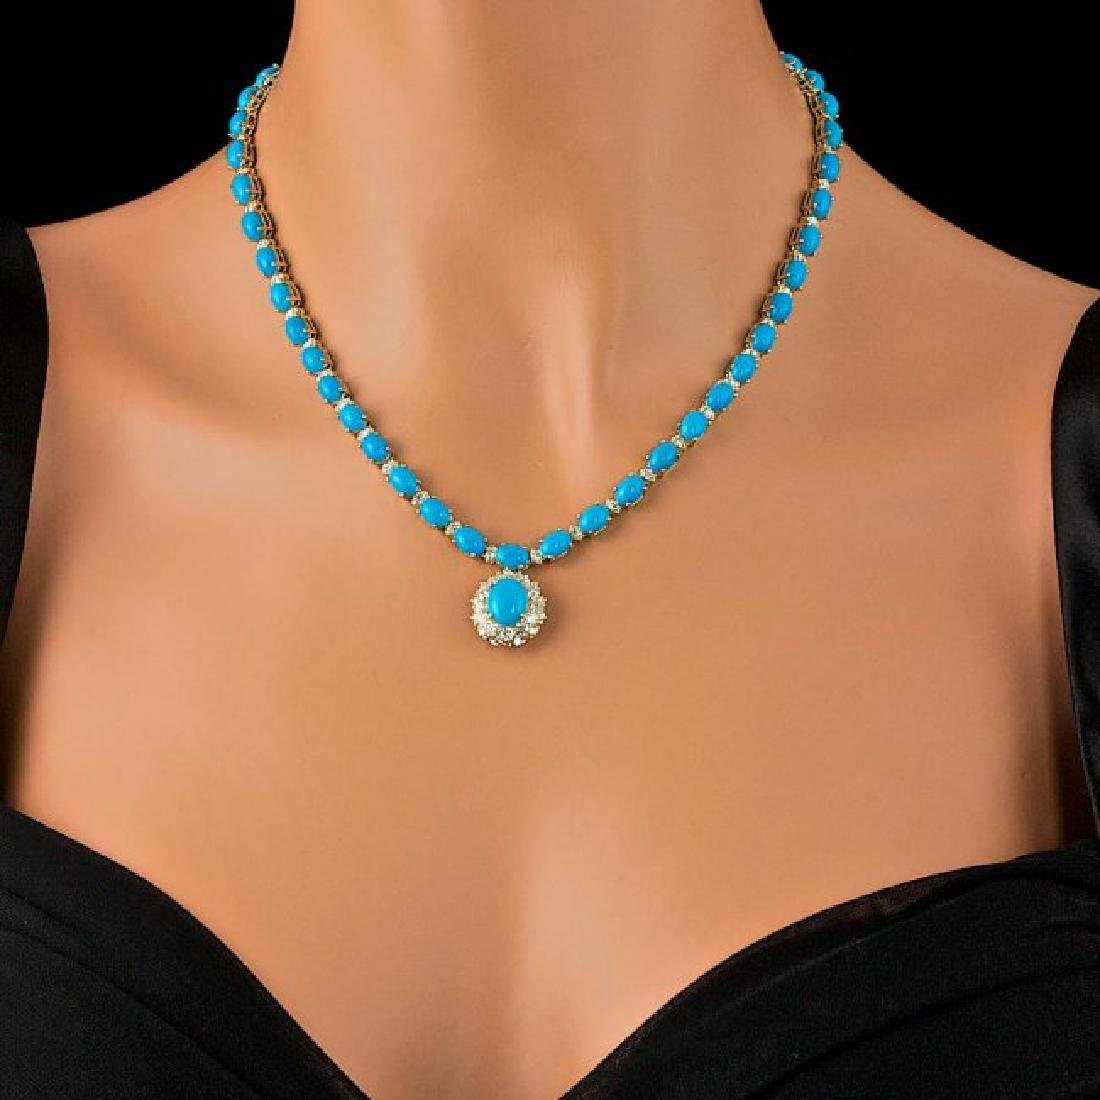 14k Gold 35.5ct Turquoise 3.50ct Diamond Necklace - 4